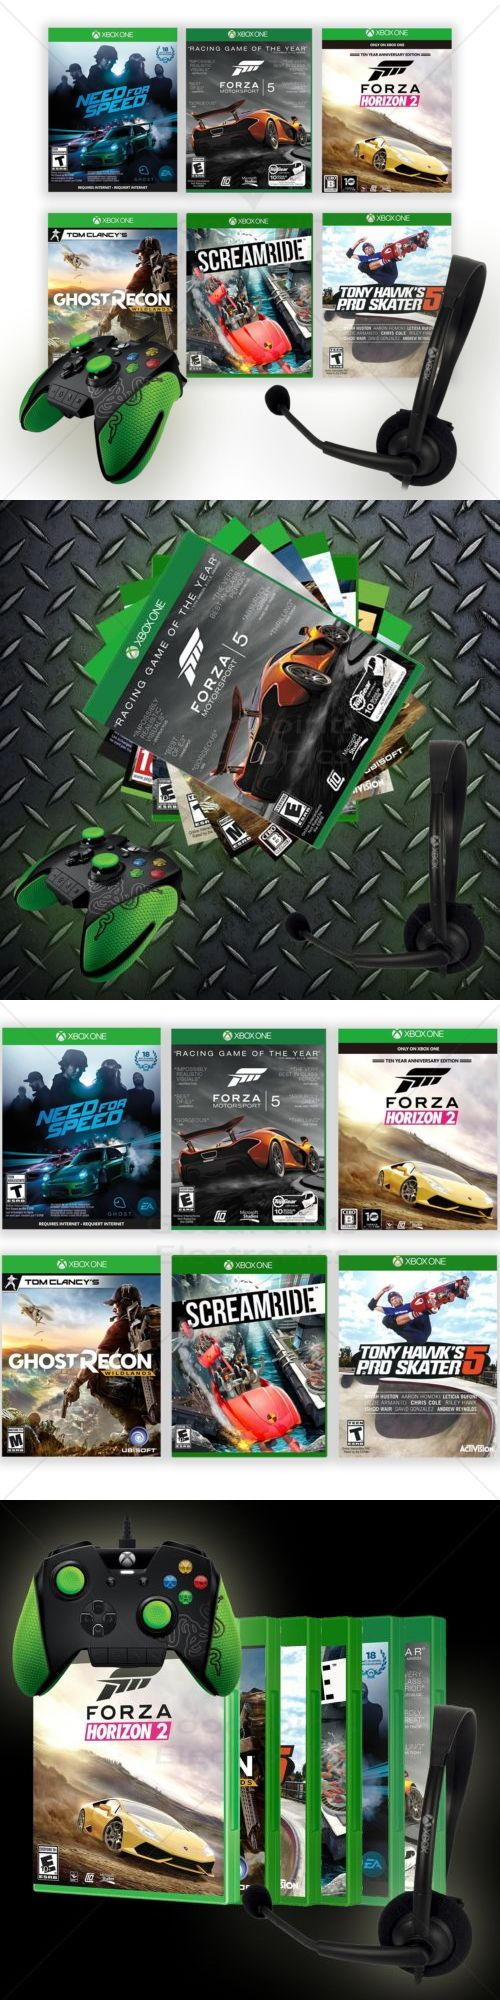 Controllers and Motion Sensors: Xbox One Deal! Microsoft Headset, Razer Wildcat Controller And Xbox One Games! -> BUY IT NOW ONLY: $85 on eBay!